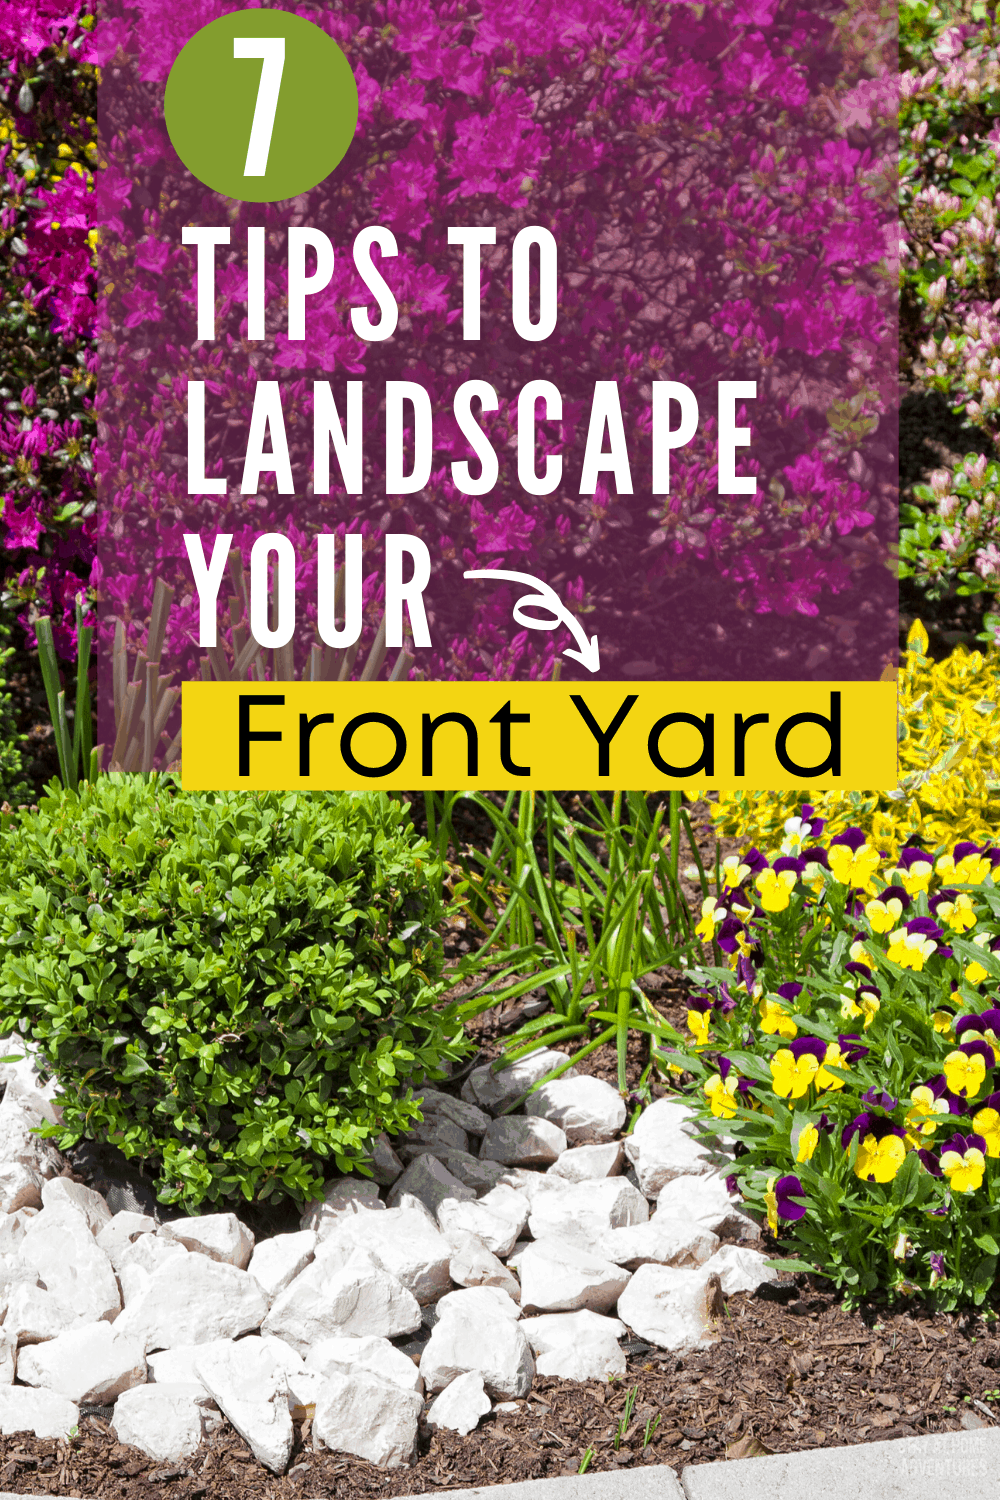 You are trying to find out how to landscape your front yard without breaking the bank. Here are 7 helpful tips to get your landscaping project started. #landscaping #Landscape #howto #frontyard via @mystayathome